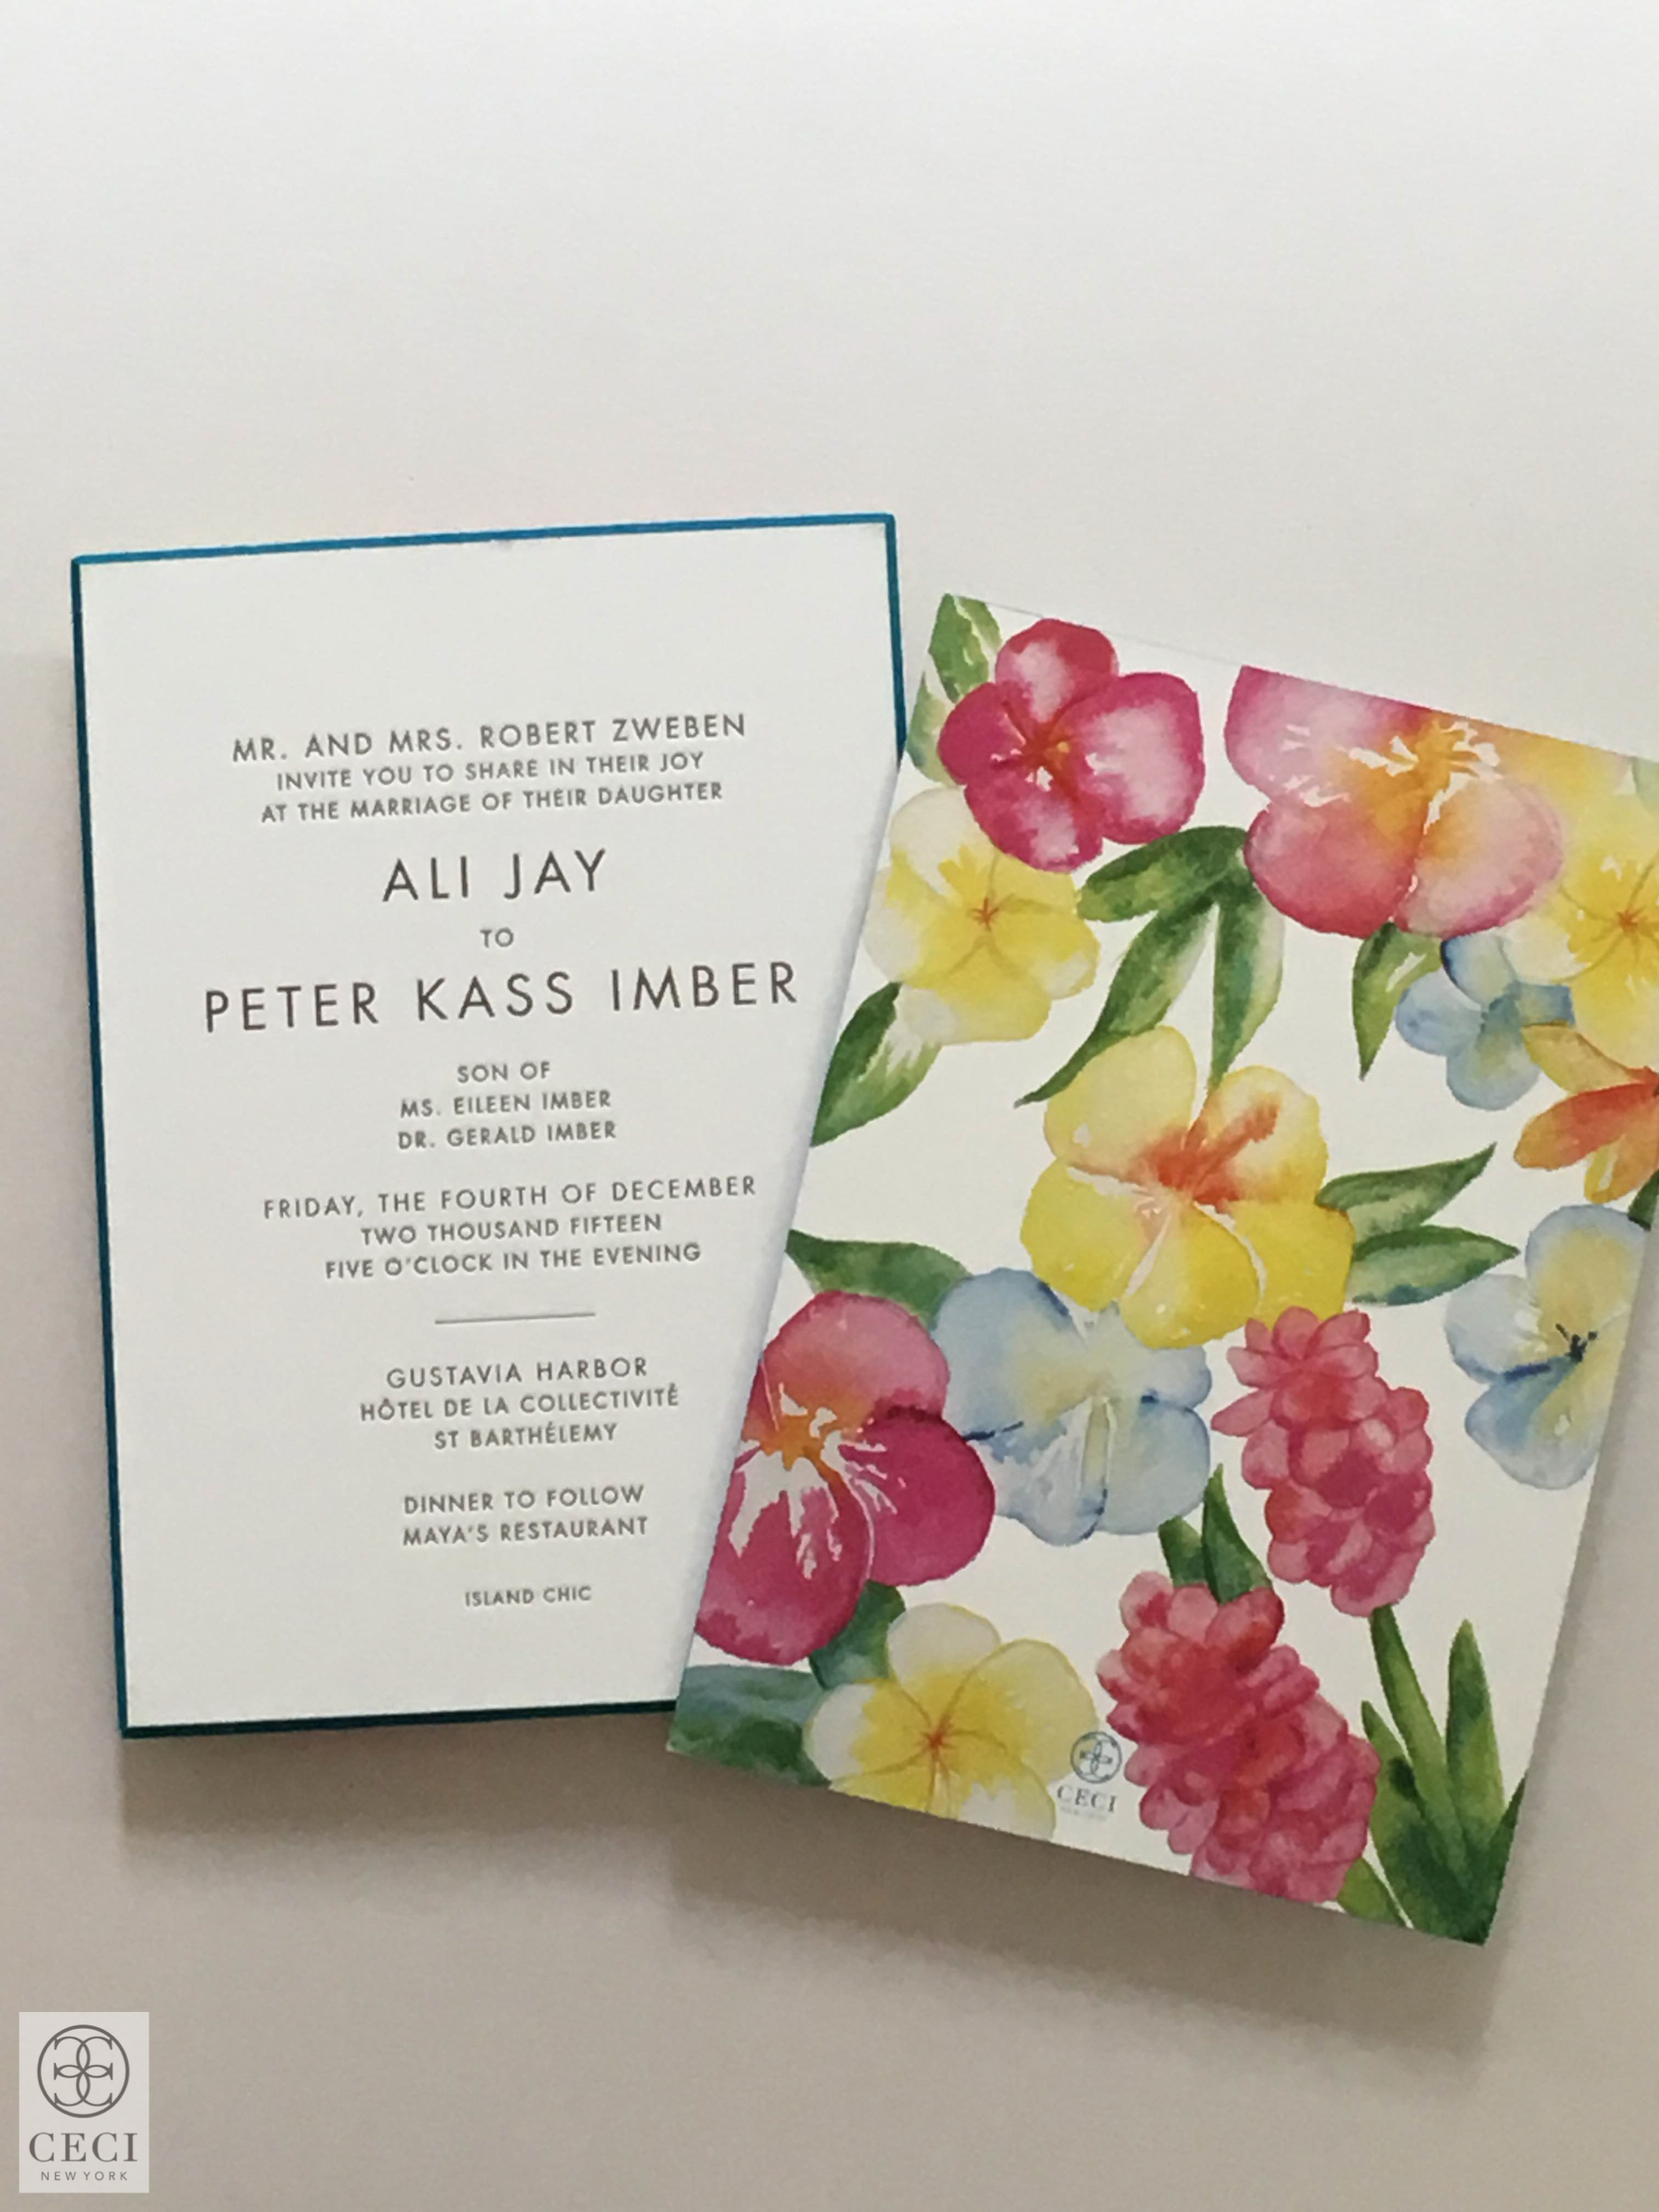 Ceci_New_York_Ceci_Style_Ceci_Johnson_Luxury_Lifestyle_Destination_St._Barts_Wedding_Letterpress_Watercolor_Floral_Hand_Painted_Inspiration_Design_Custom_Couture_Personalized_Invitations_-12.jpg